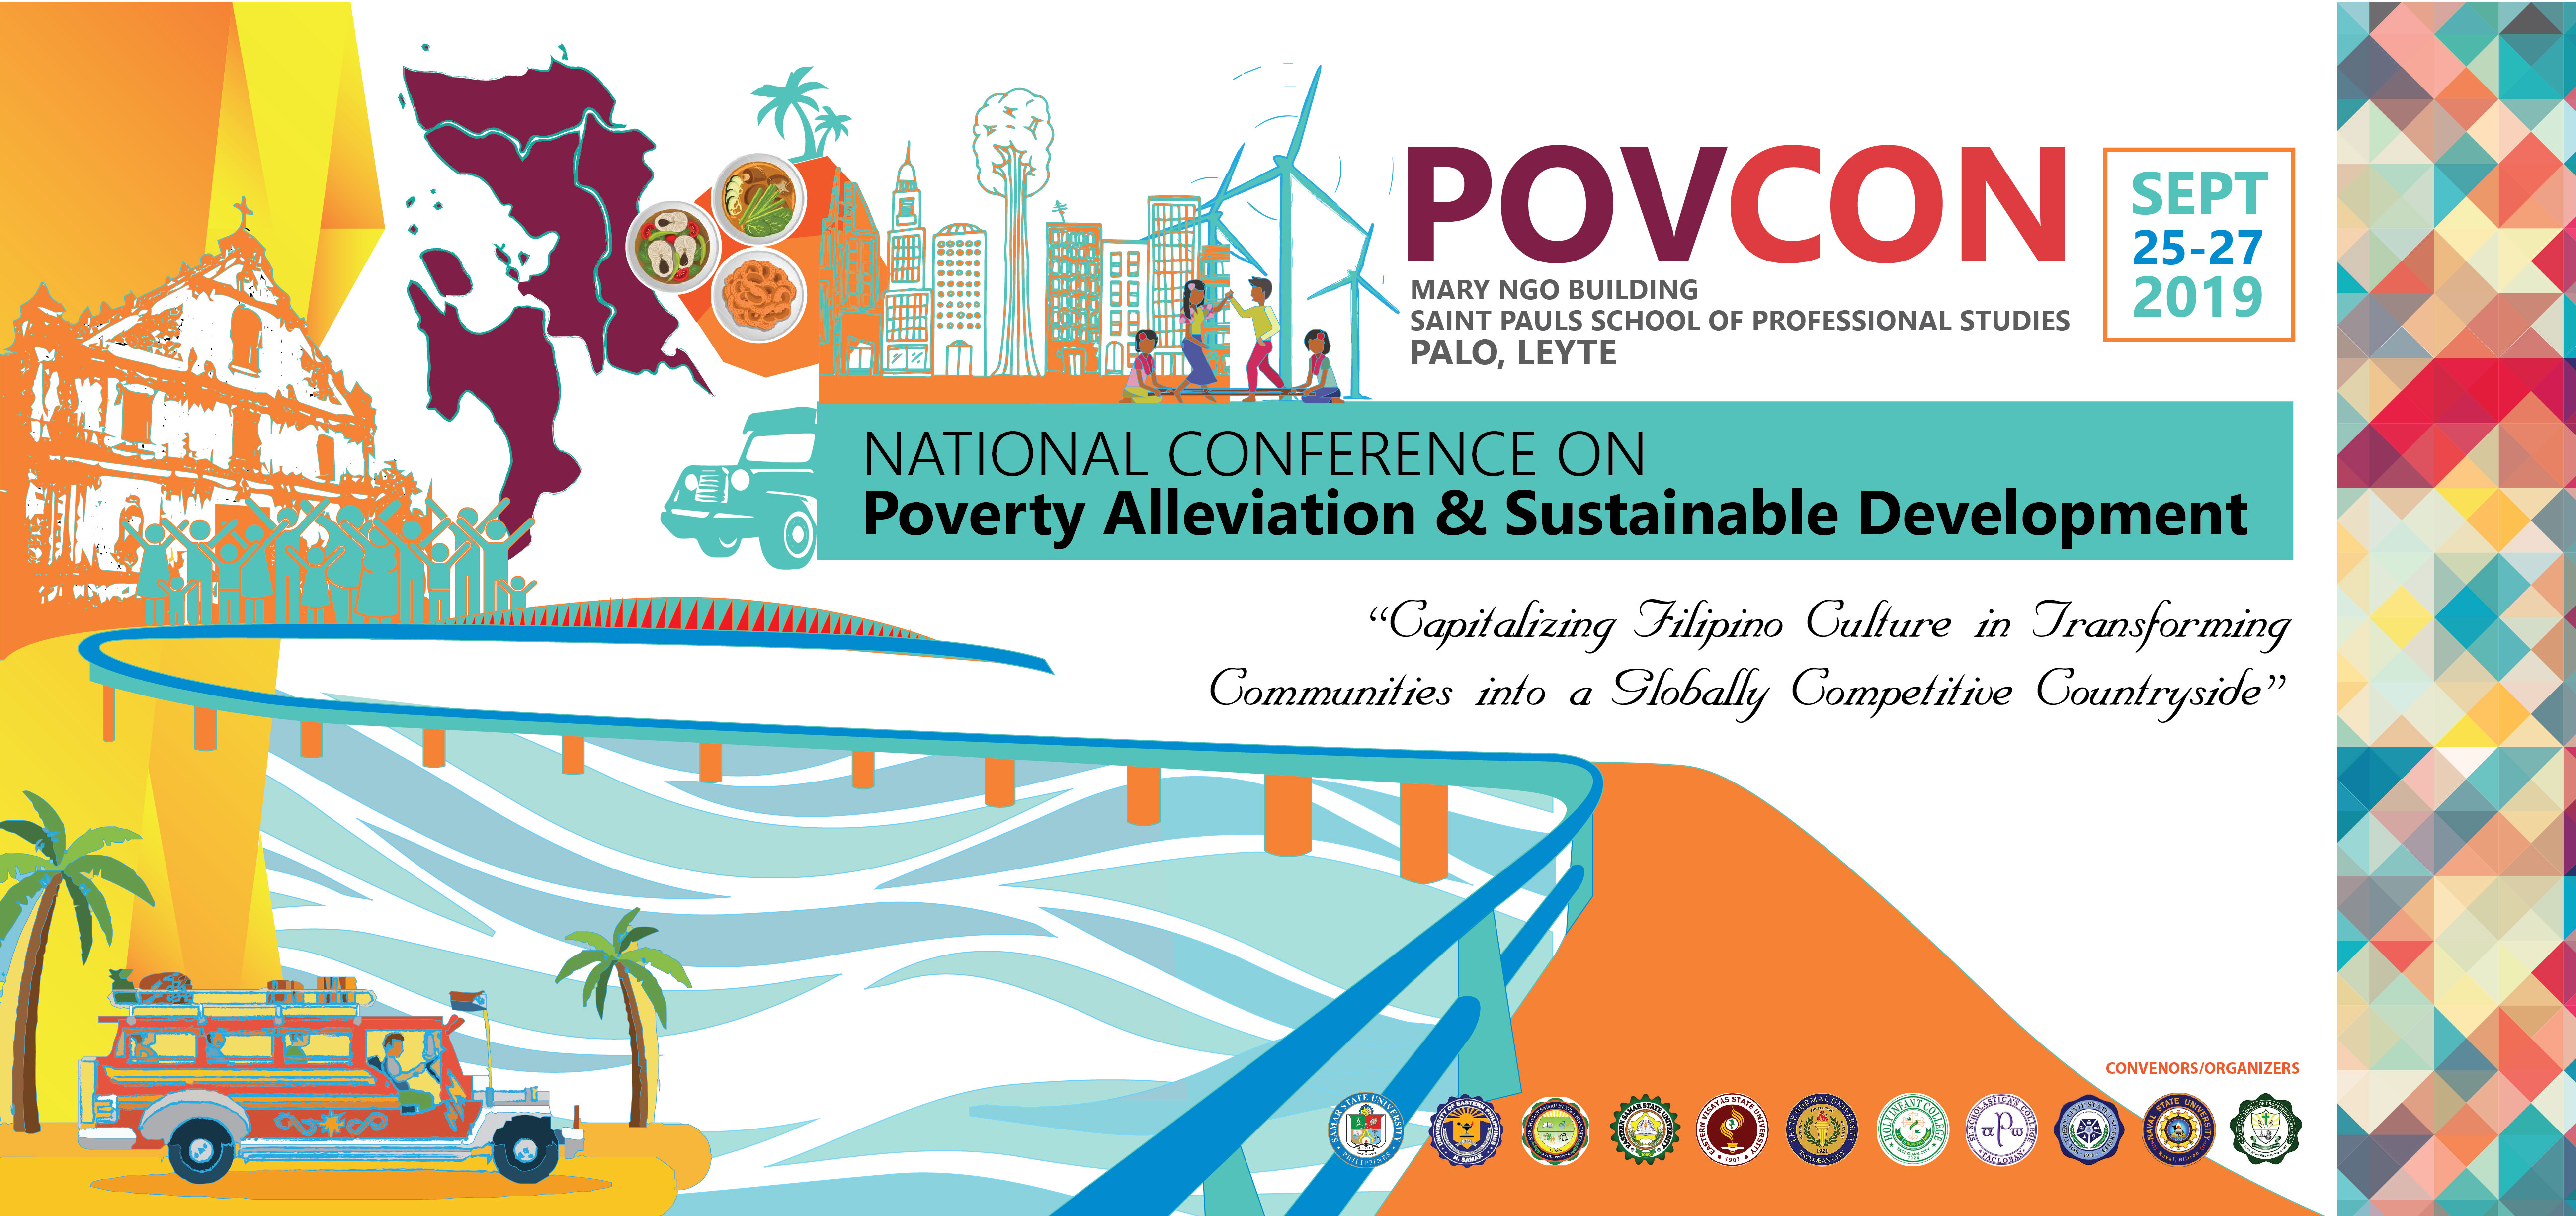 2019 National Conference on Poverty Alleviation & Sustainable Development